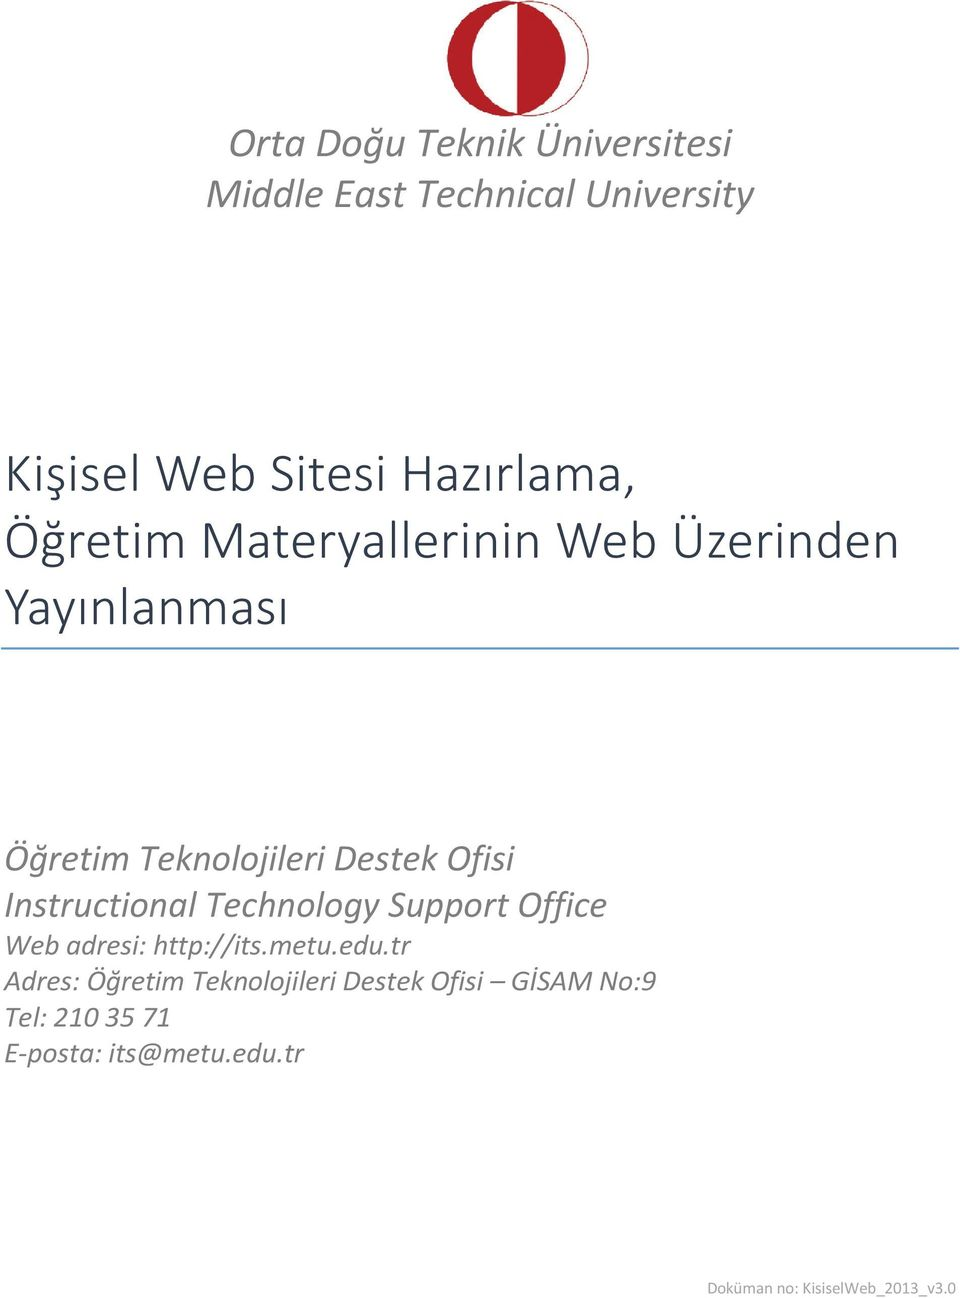 Instructional Technology Support Office Web adresi: http://its.metu.edu.